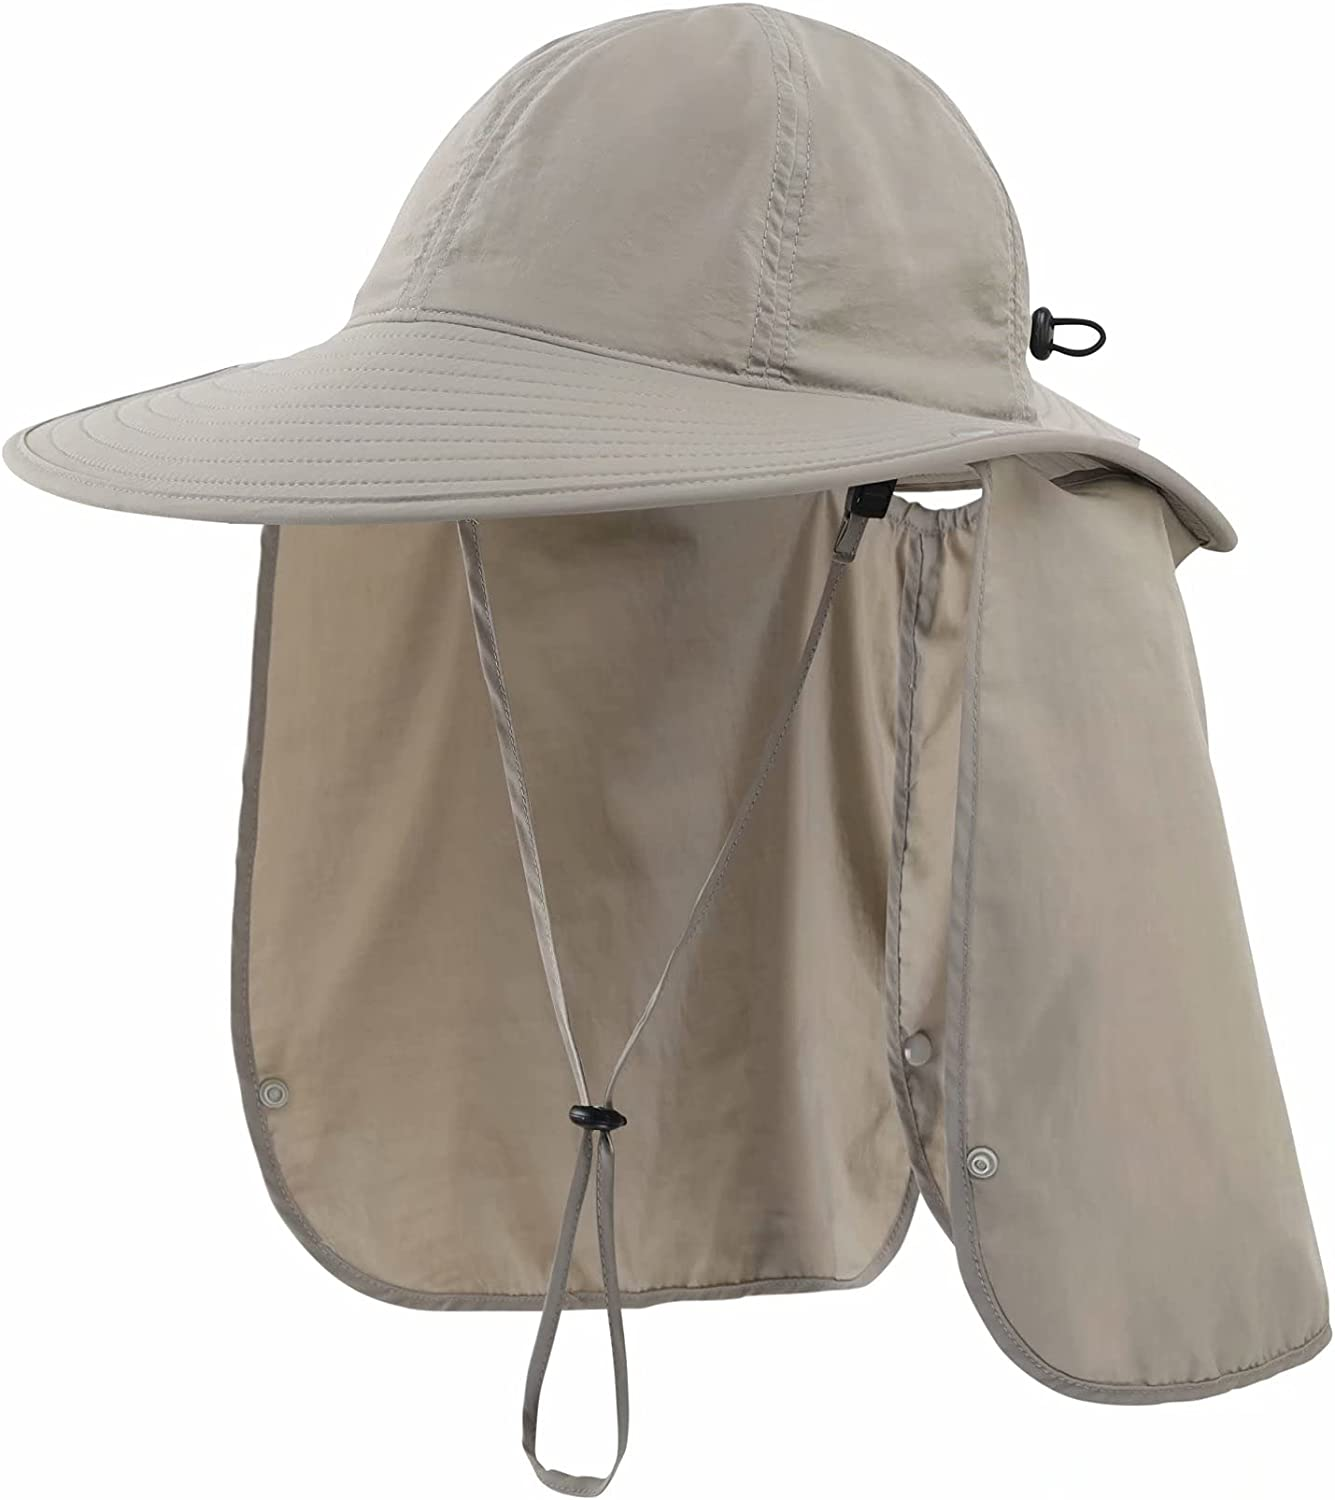 Connectyle Mens Safari Sun Hat Manufacturer OFFicial shop with Sales of SALE items from new works 50+ Protec Flap Neck UPF